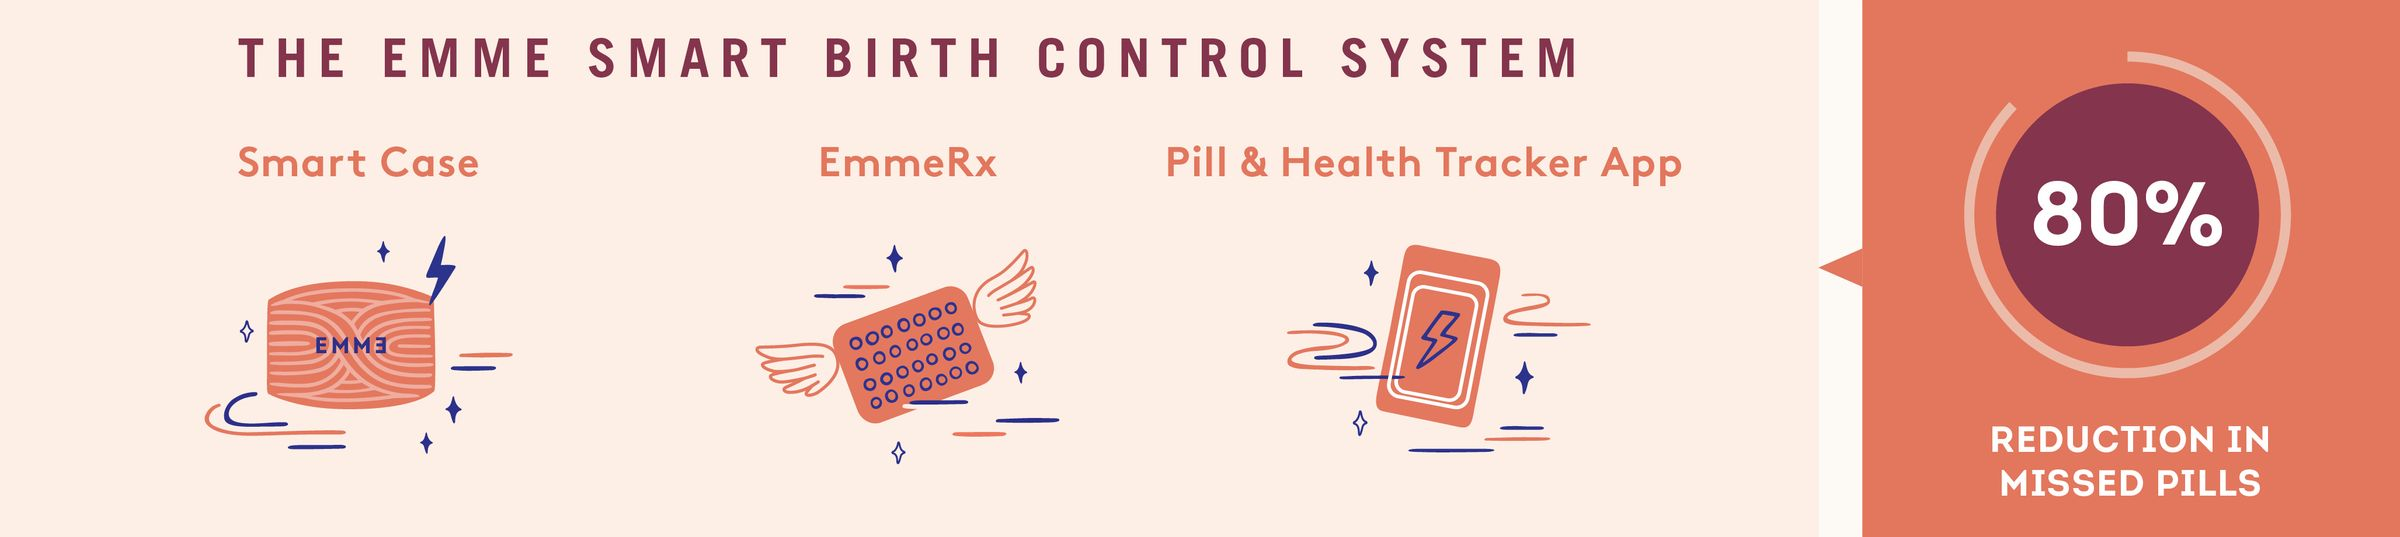 The Emme Complete Birth Control System